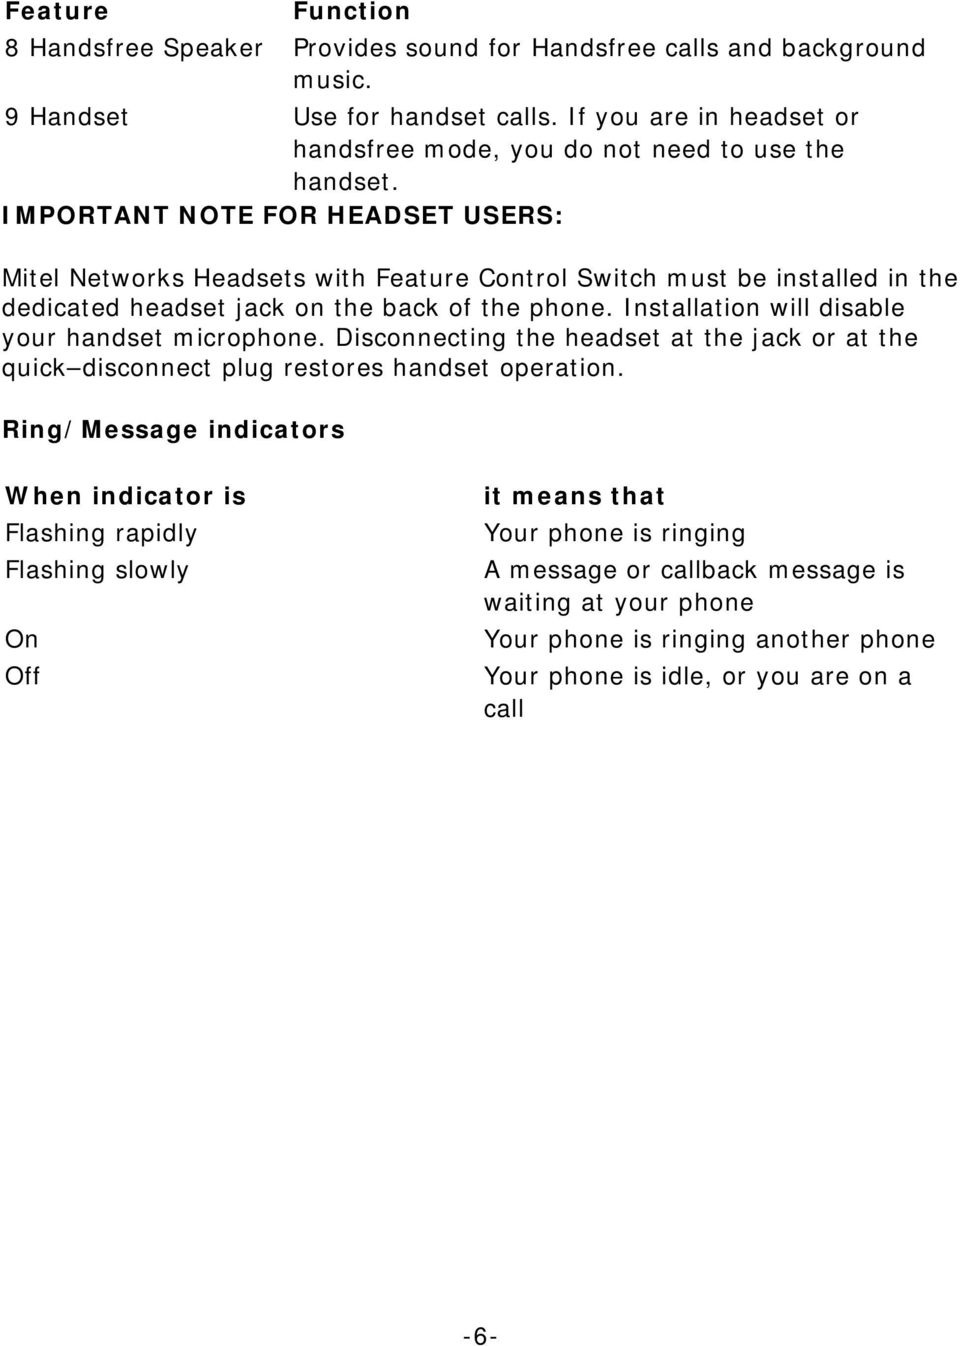 IMPORTANT NOTE FOR HEADSET USERS: Mitel Networks Headsets with Feature Control Switch must be installed in the dedicated headset jack on the back of the phone.